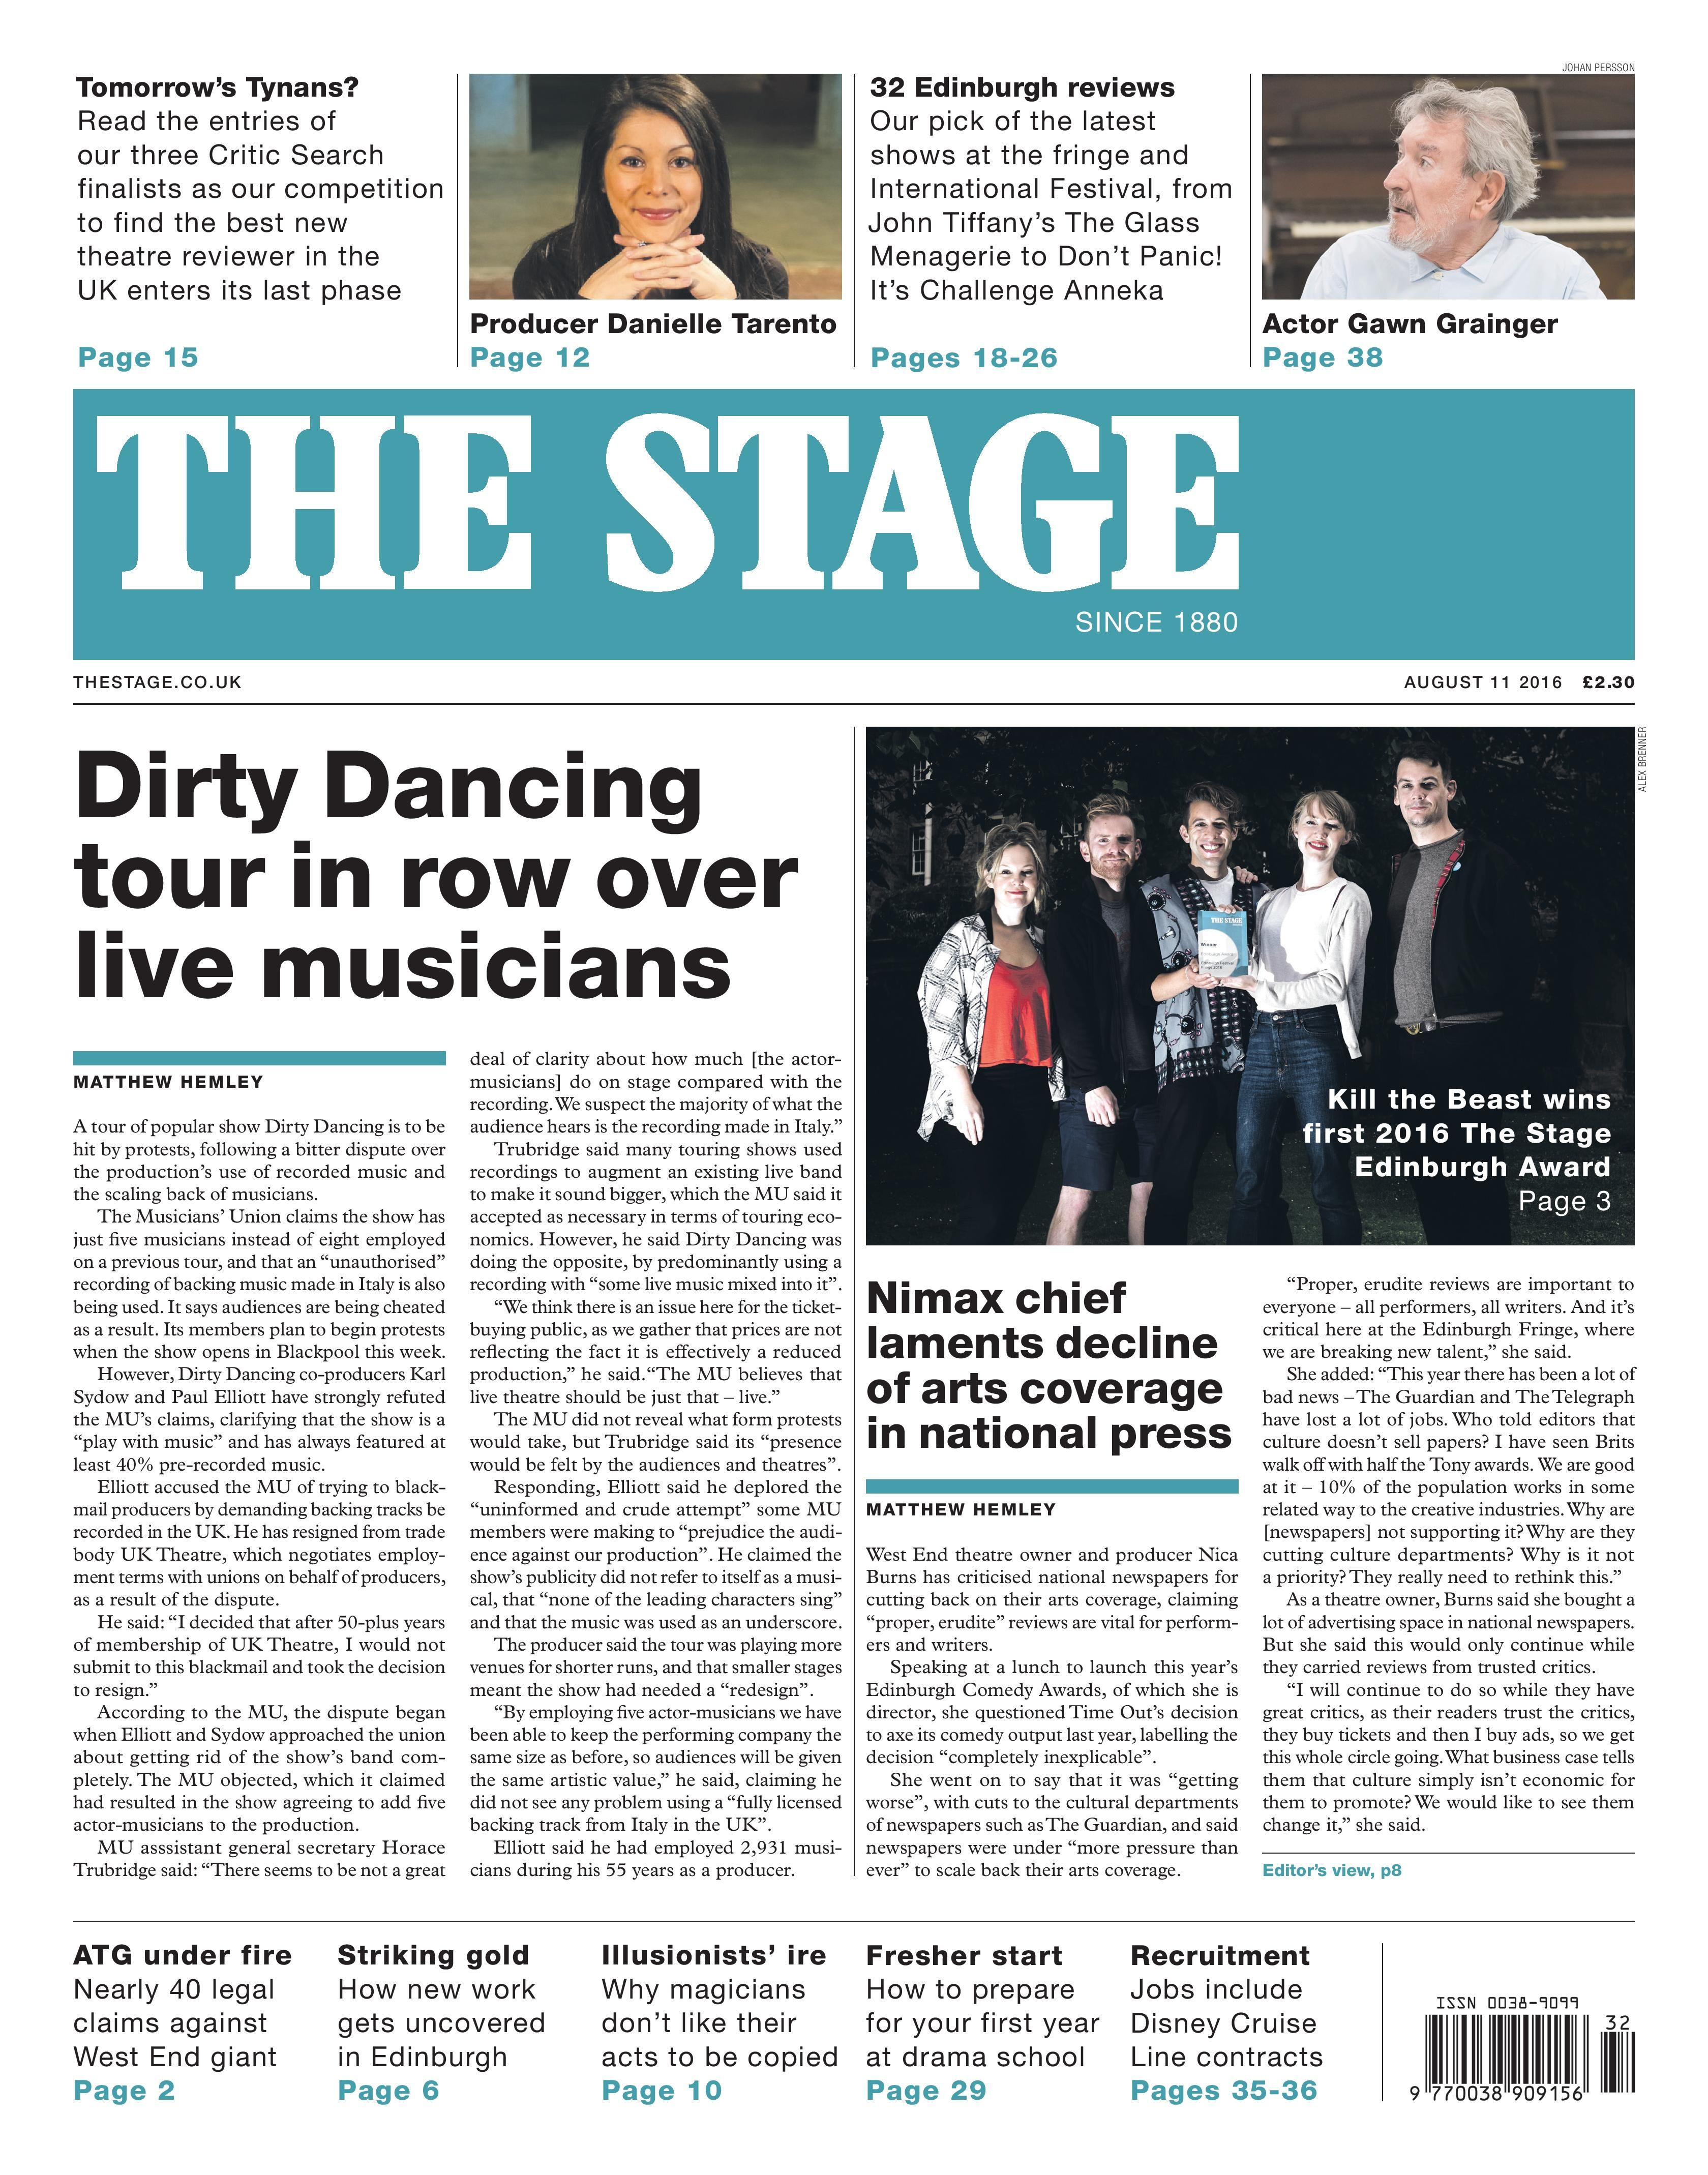 The Stage | August 11 2016: Dirty Dancing tour in row over live musicians.